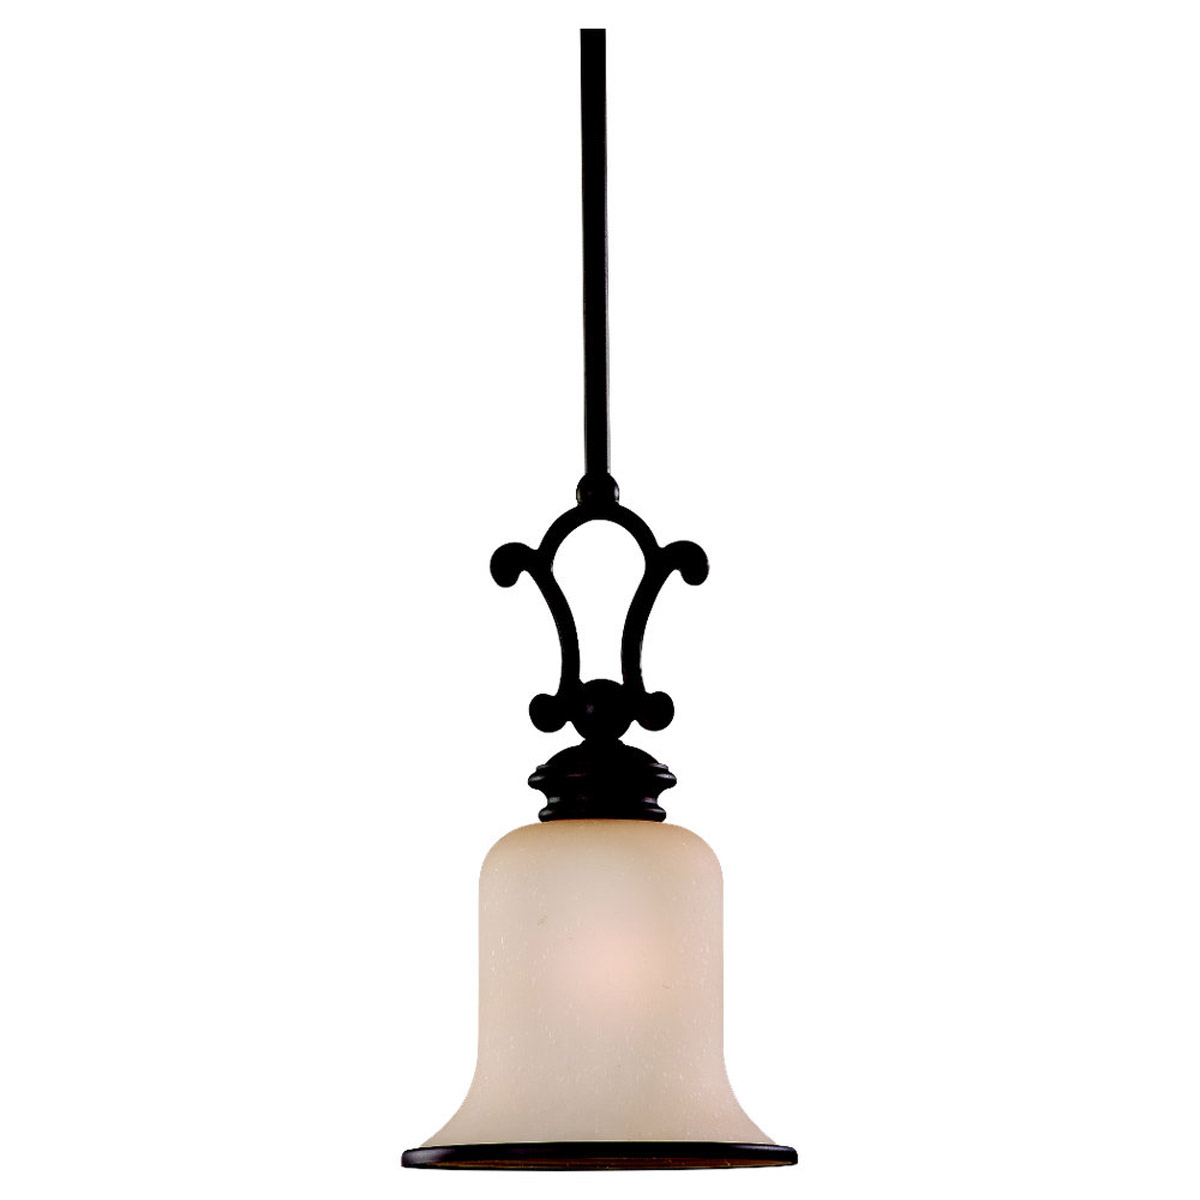 Sea Gull Lighting Acadia 1 Light Mini Pendant in Misted Bronze 61145-814